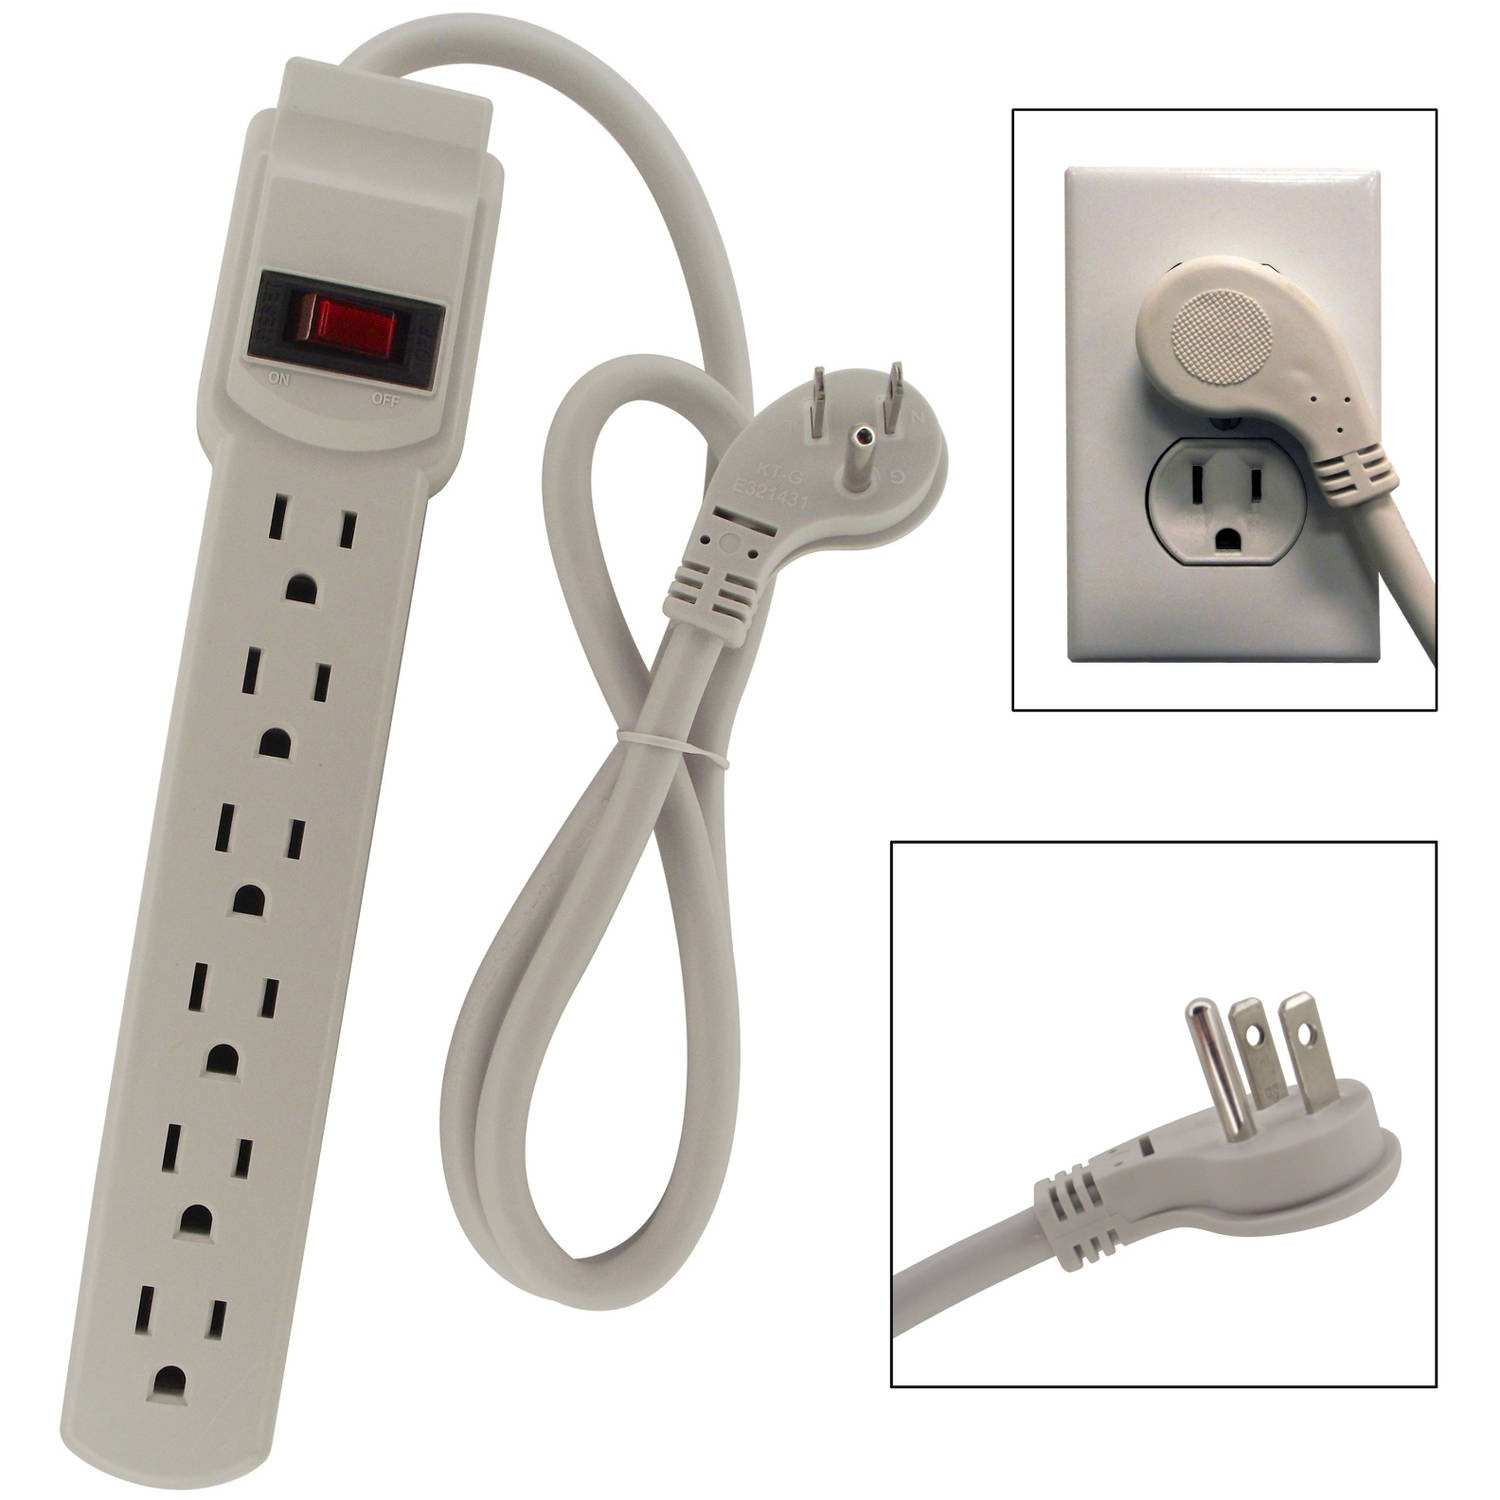 Shaxon 6-Outlet Power Strip with 3' Cord 45-Degree Angle Flat Plug